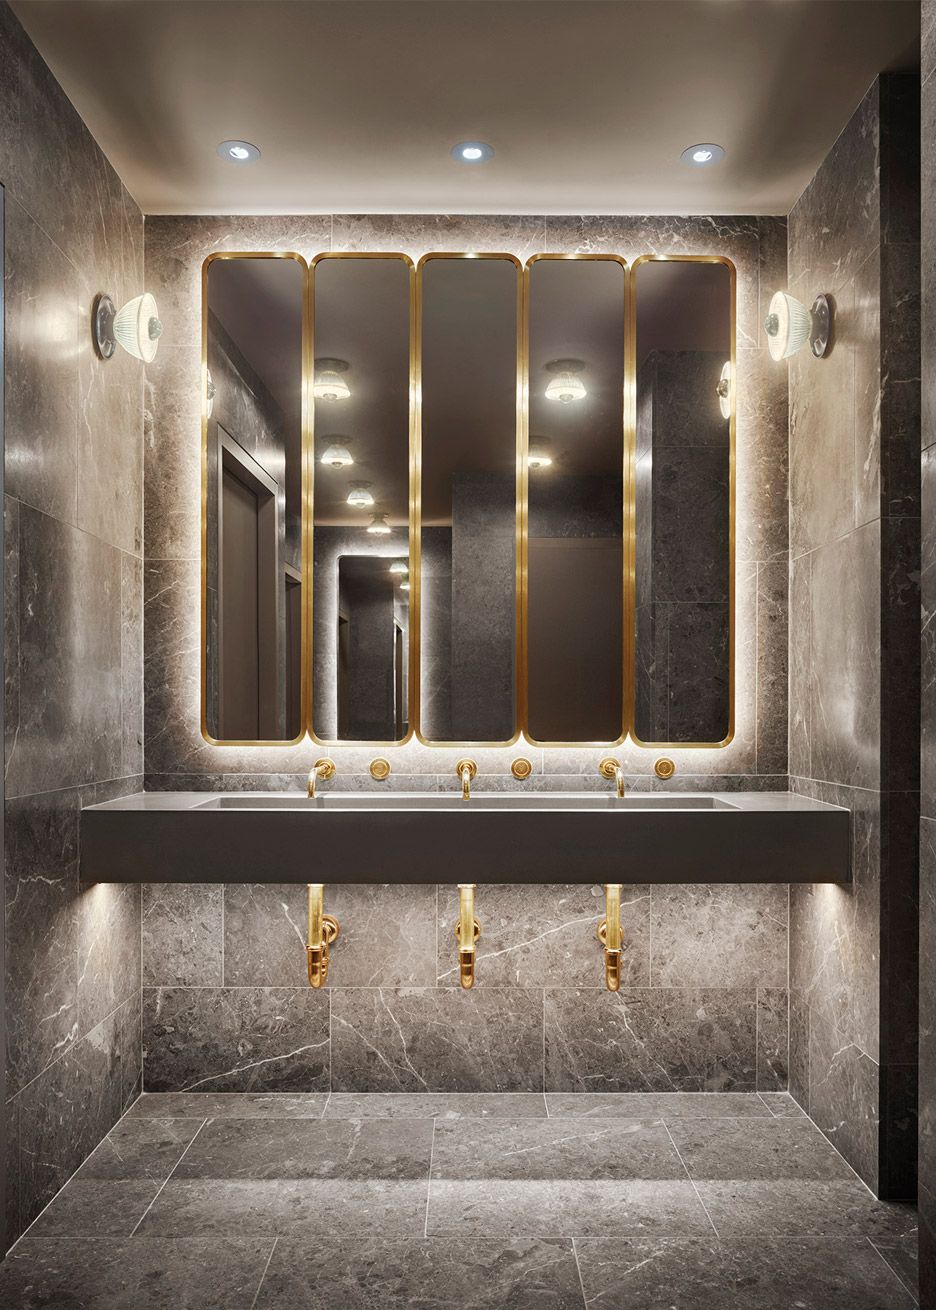 11 howard hotel new york by space copenhagen modern bathroom design pinterest copenhagen. Black Bedroom Furniture Sets. Home Design Ideas